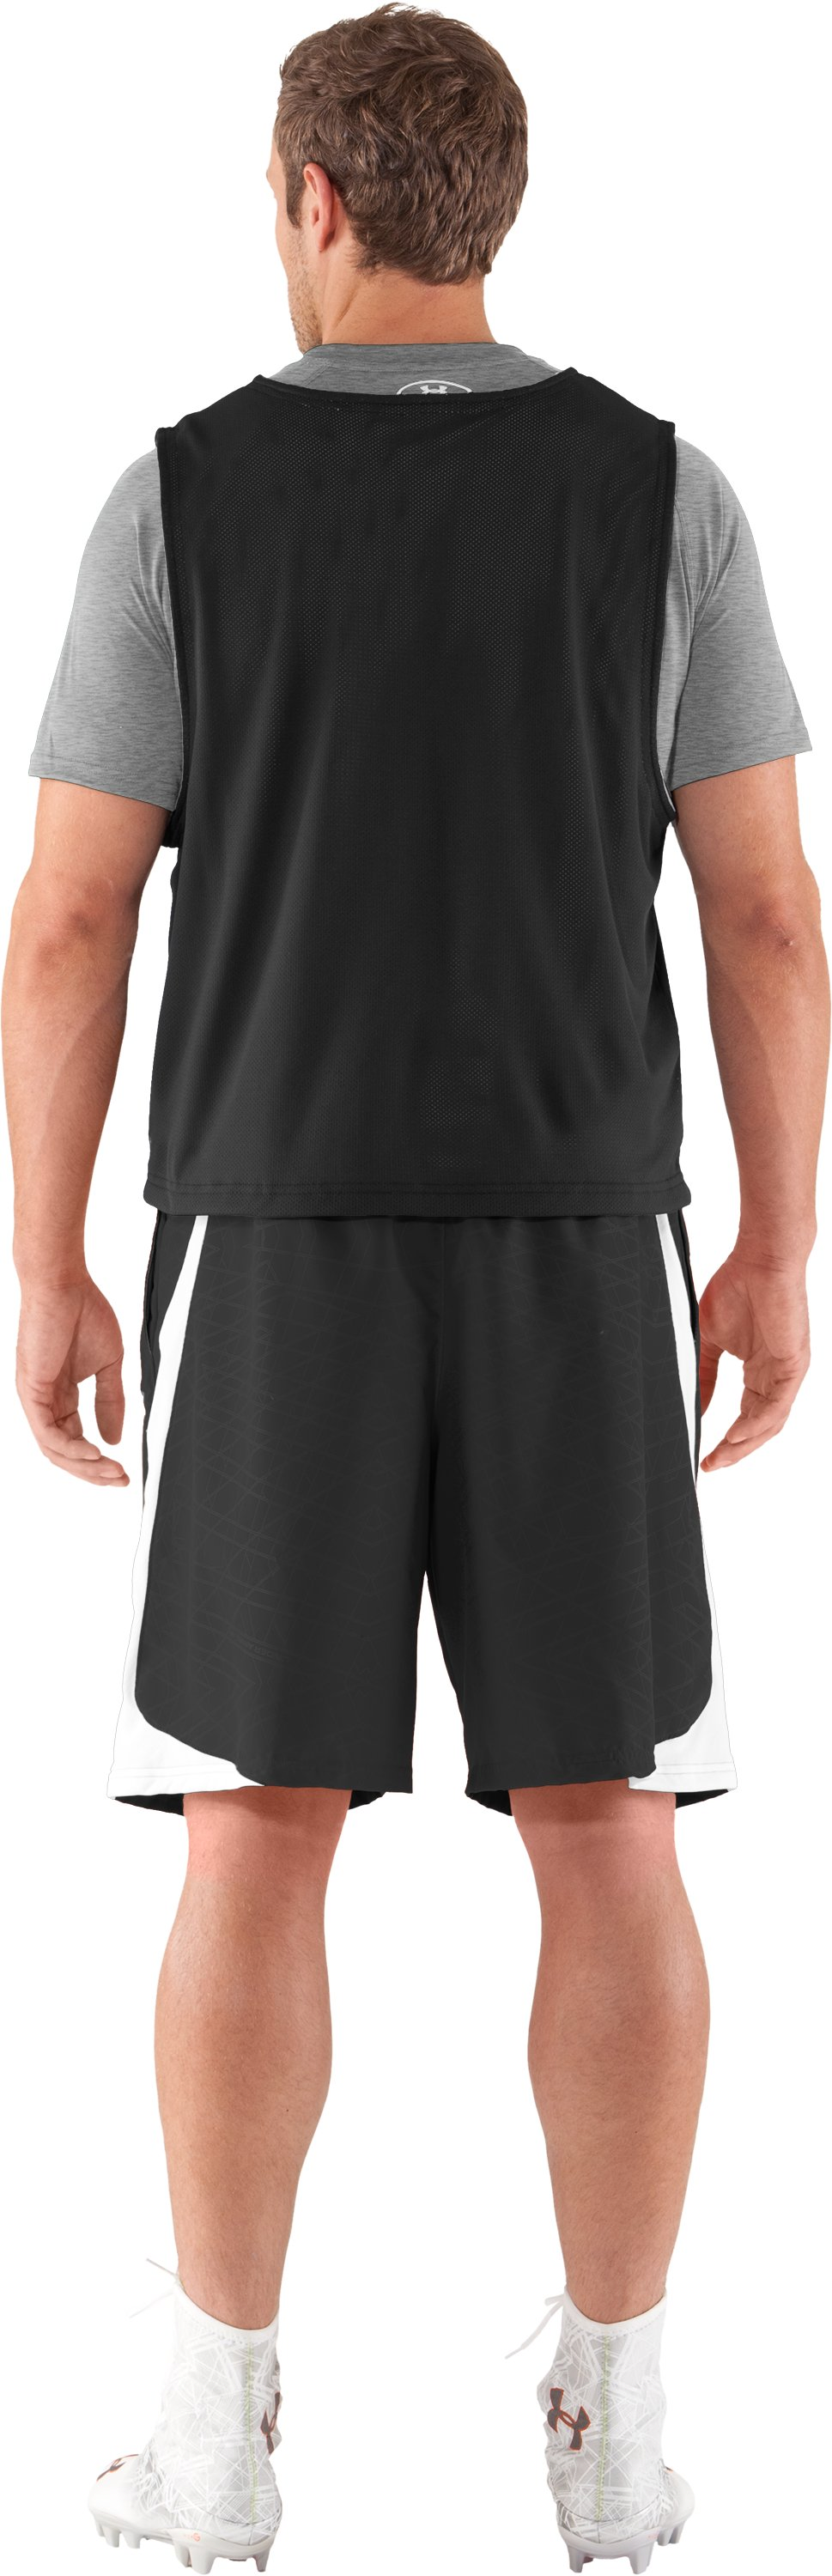 Men's Practice Jersey, Black , Back